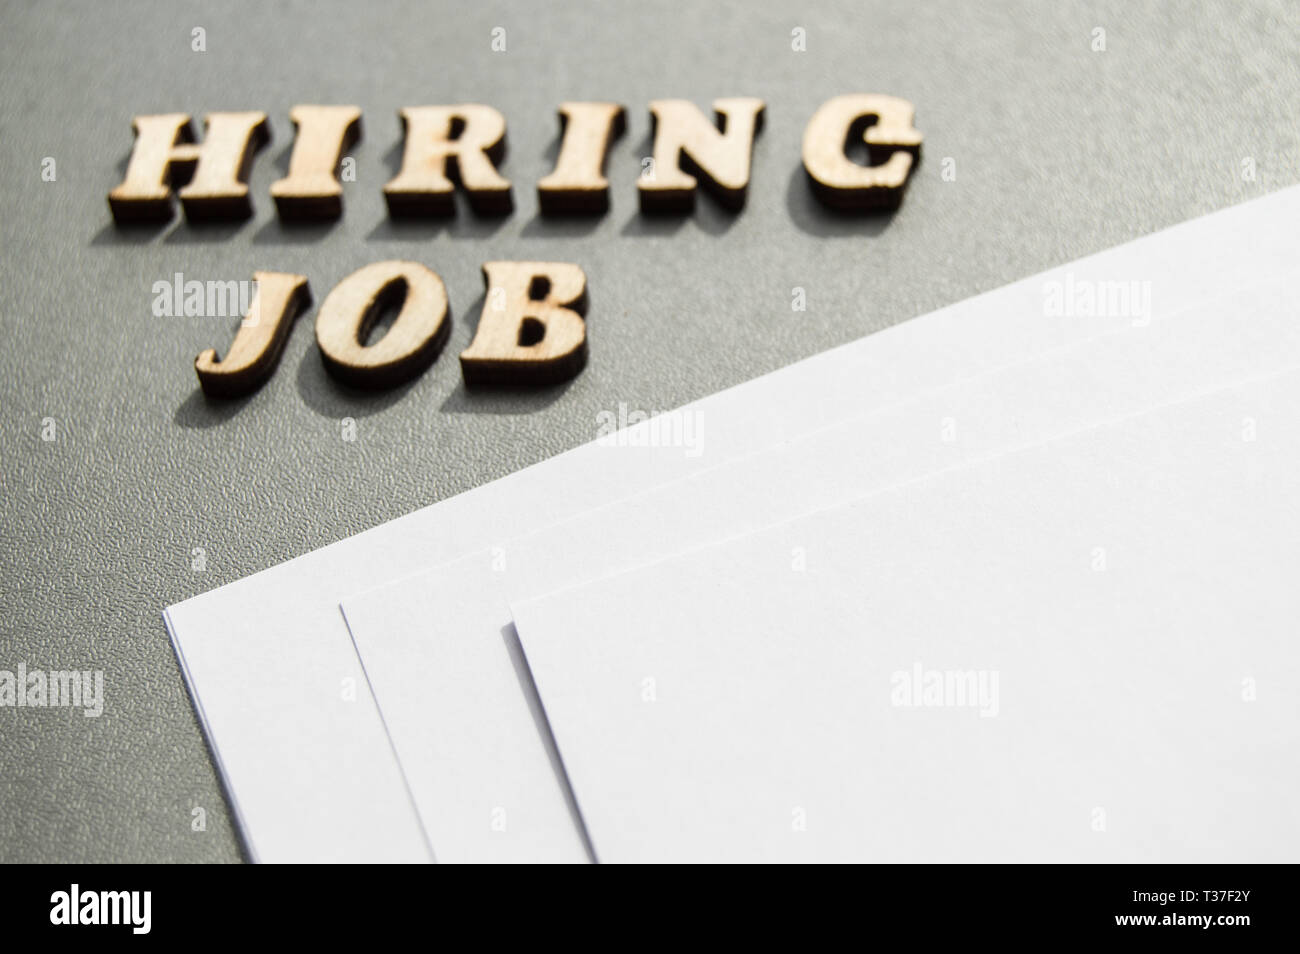 Hiring JOB is written in wooden letters on a gray background, near white sheets of paper, layout for design, ad layout, hiring concept. - Stock Image